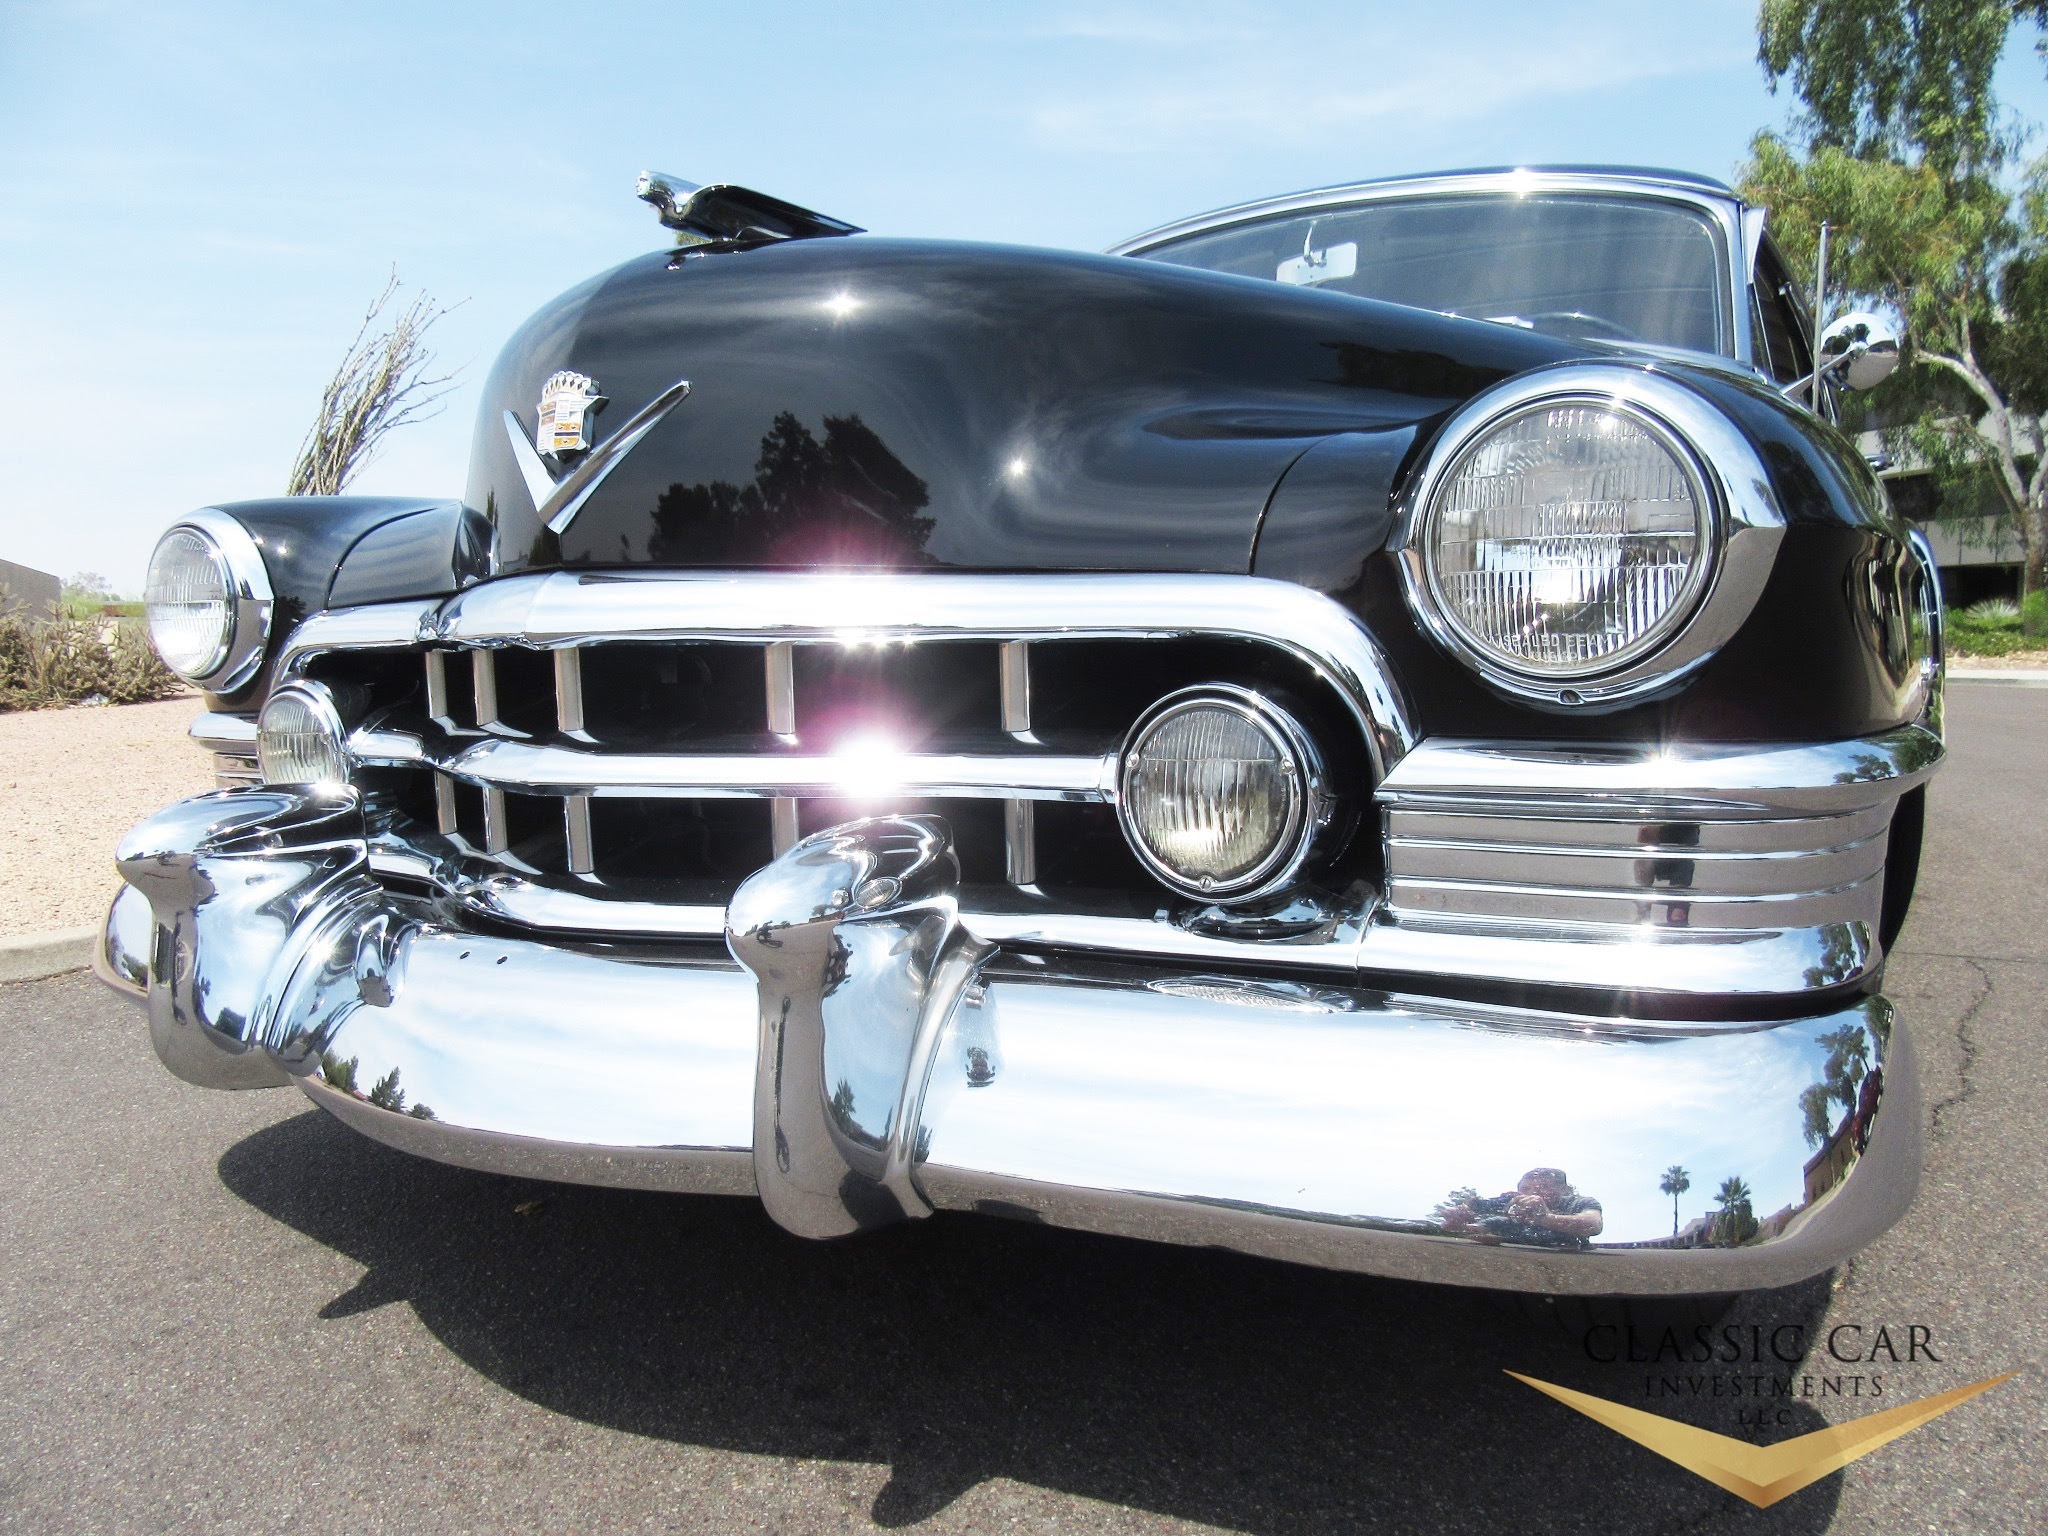 1950 Cadillac Coupe DeVille   Classic Car Investments, LLC